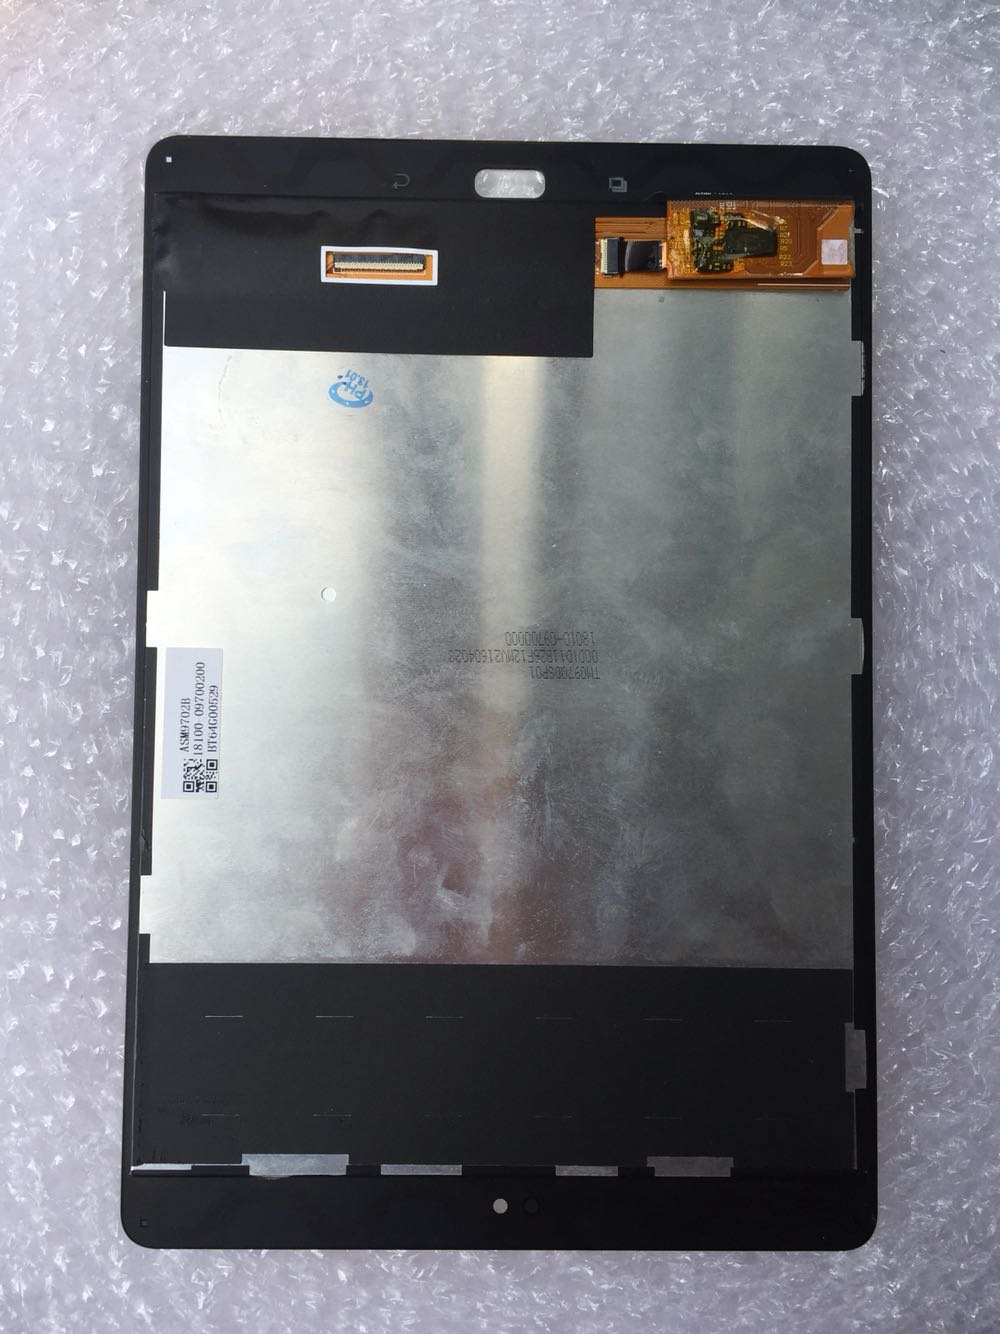 For ASUS ZenPad 3S 10 Z500M P027 Z500KL P001 LCD Display Matrix Touch Screen Digitizer Sensor Tablet PC Parts Assembly for asus zenpad 10 z300 z300c z300cg p021 lcd display touch screen digitizer panel assembly